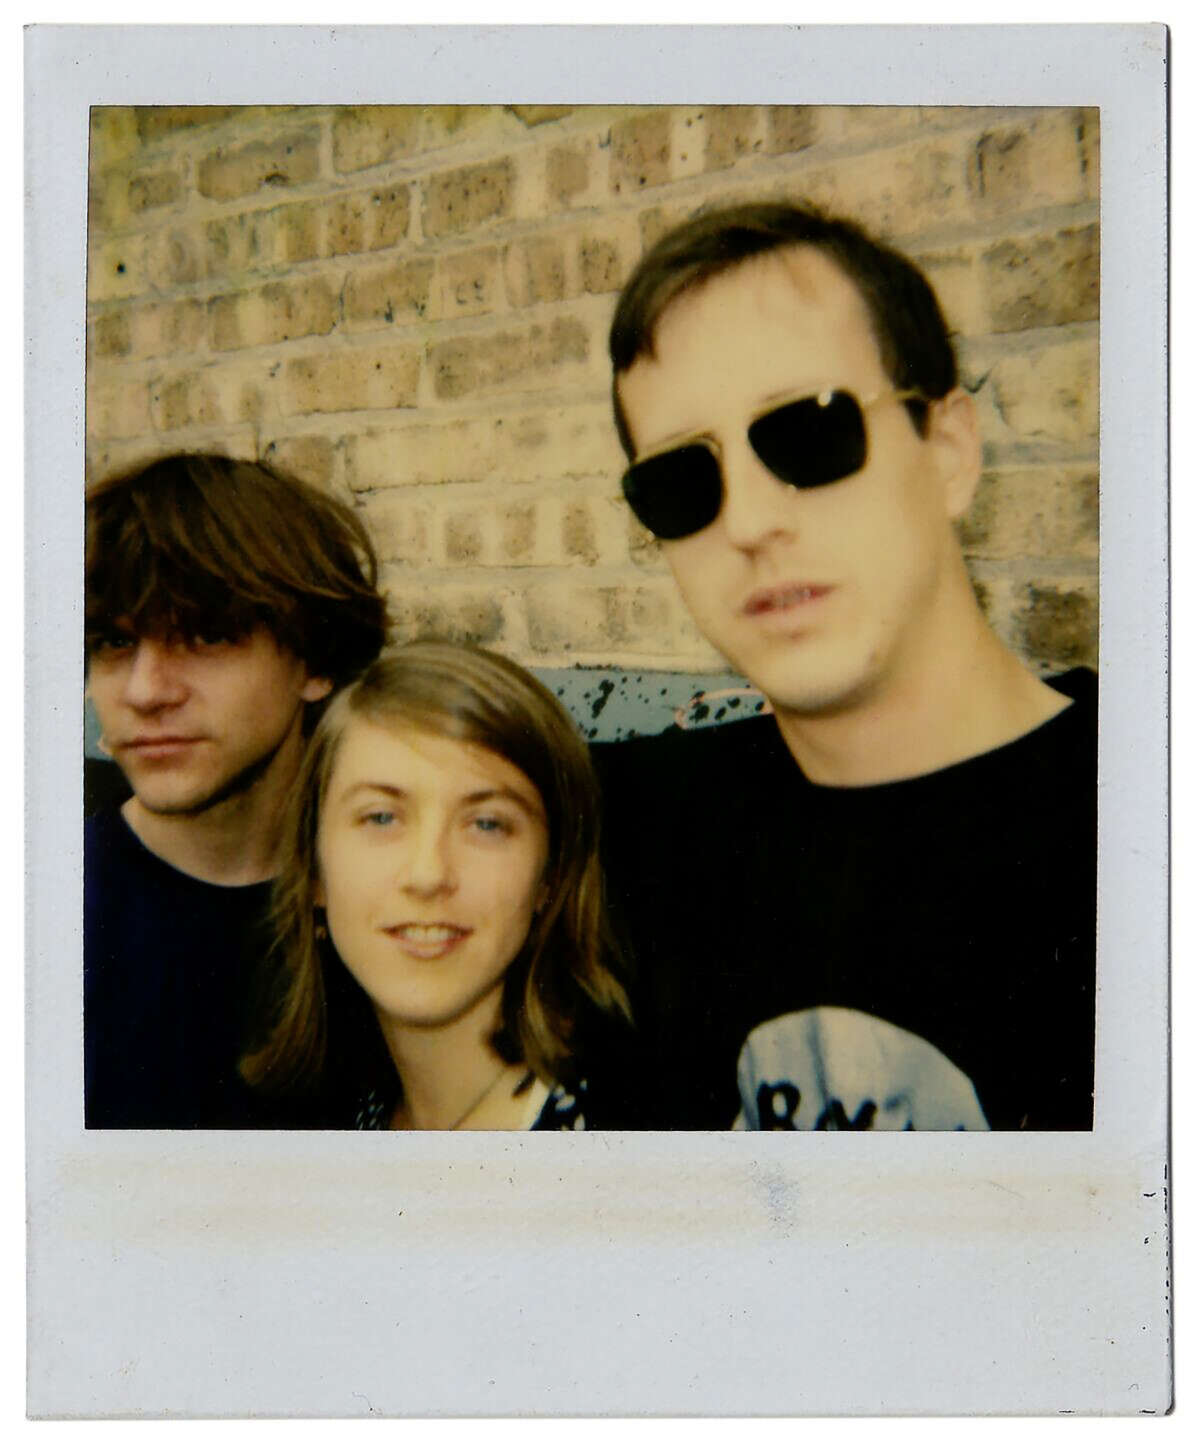 Casey Rice, Liz Phair and Brad Wood appear outside Idful Music Corp. in 1993.